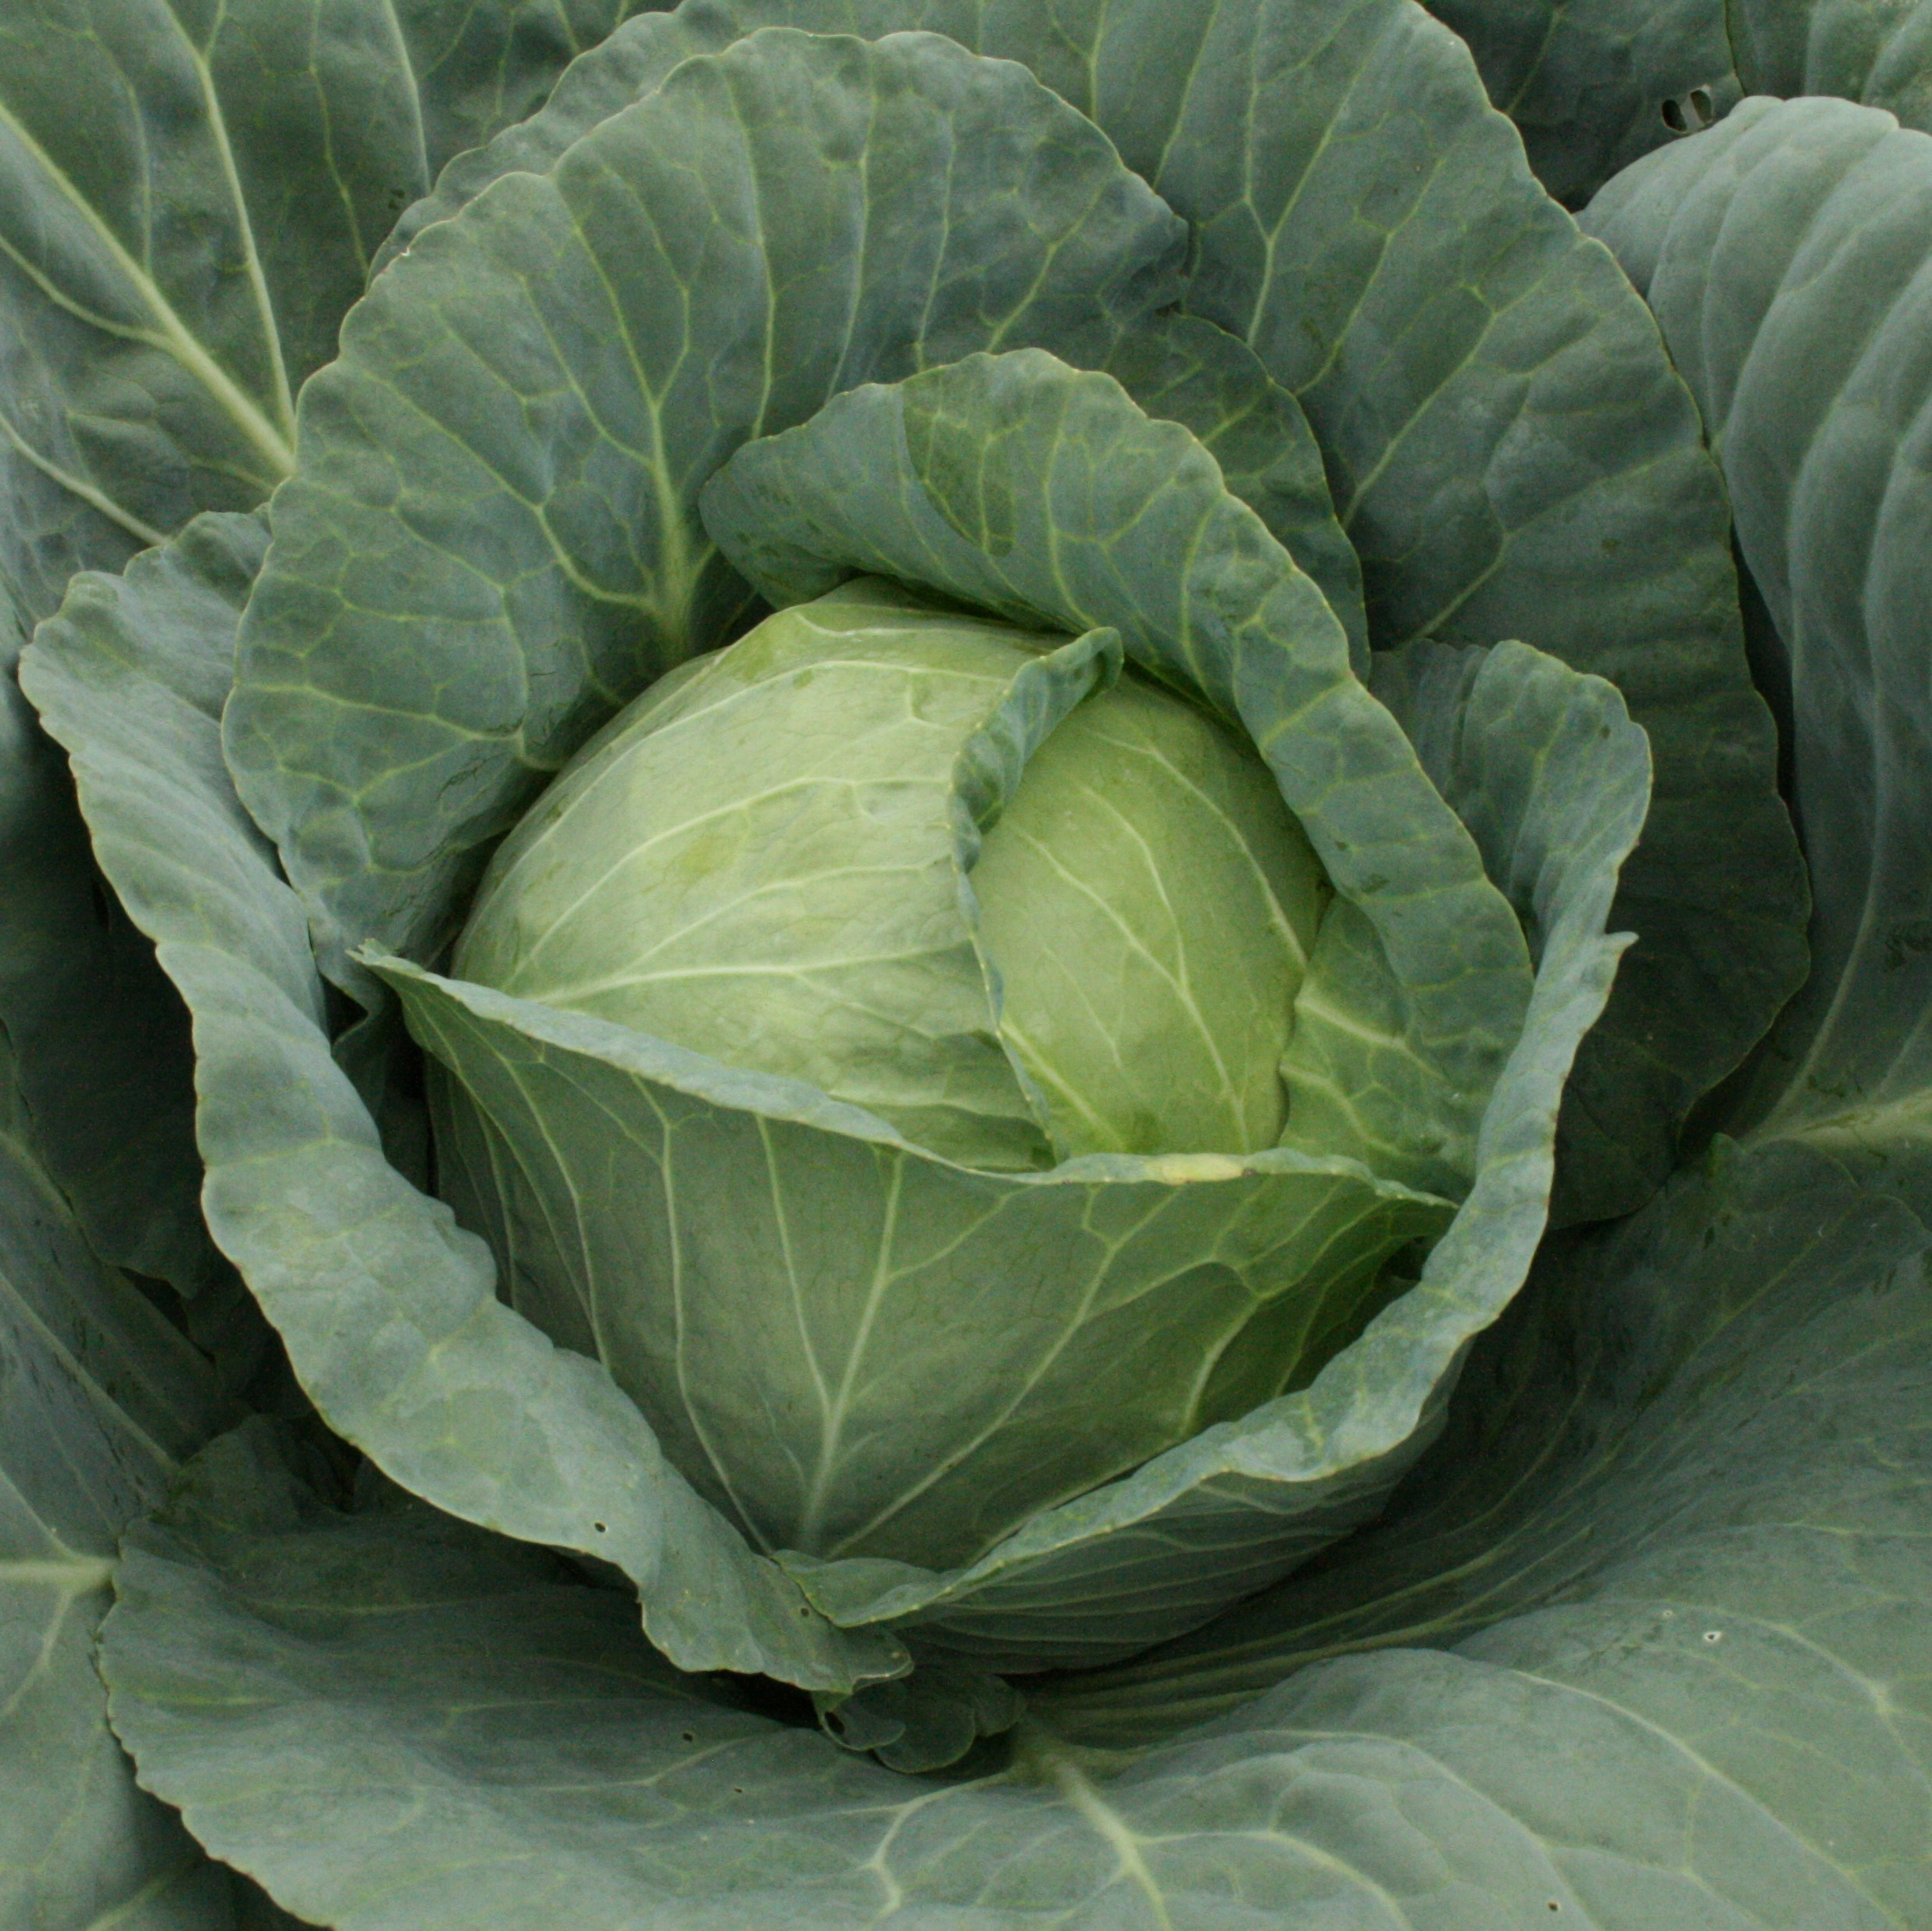 White Cabbage Victoria in Nigeria